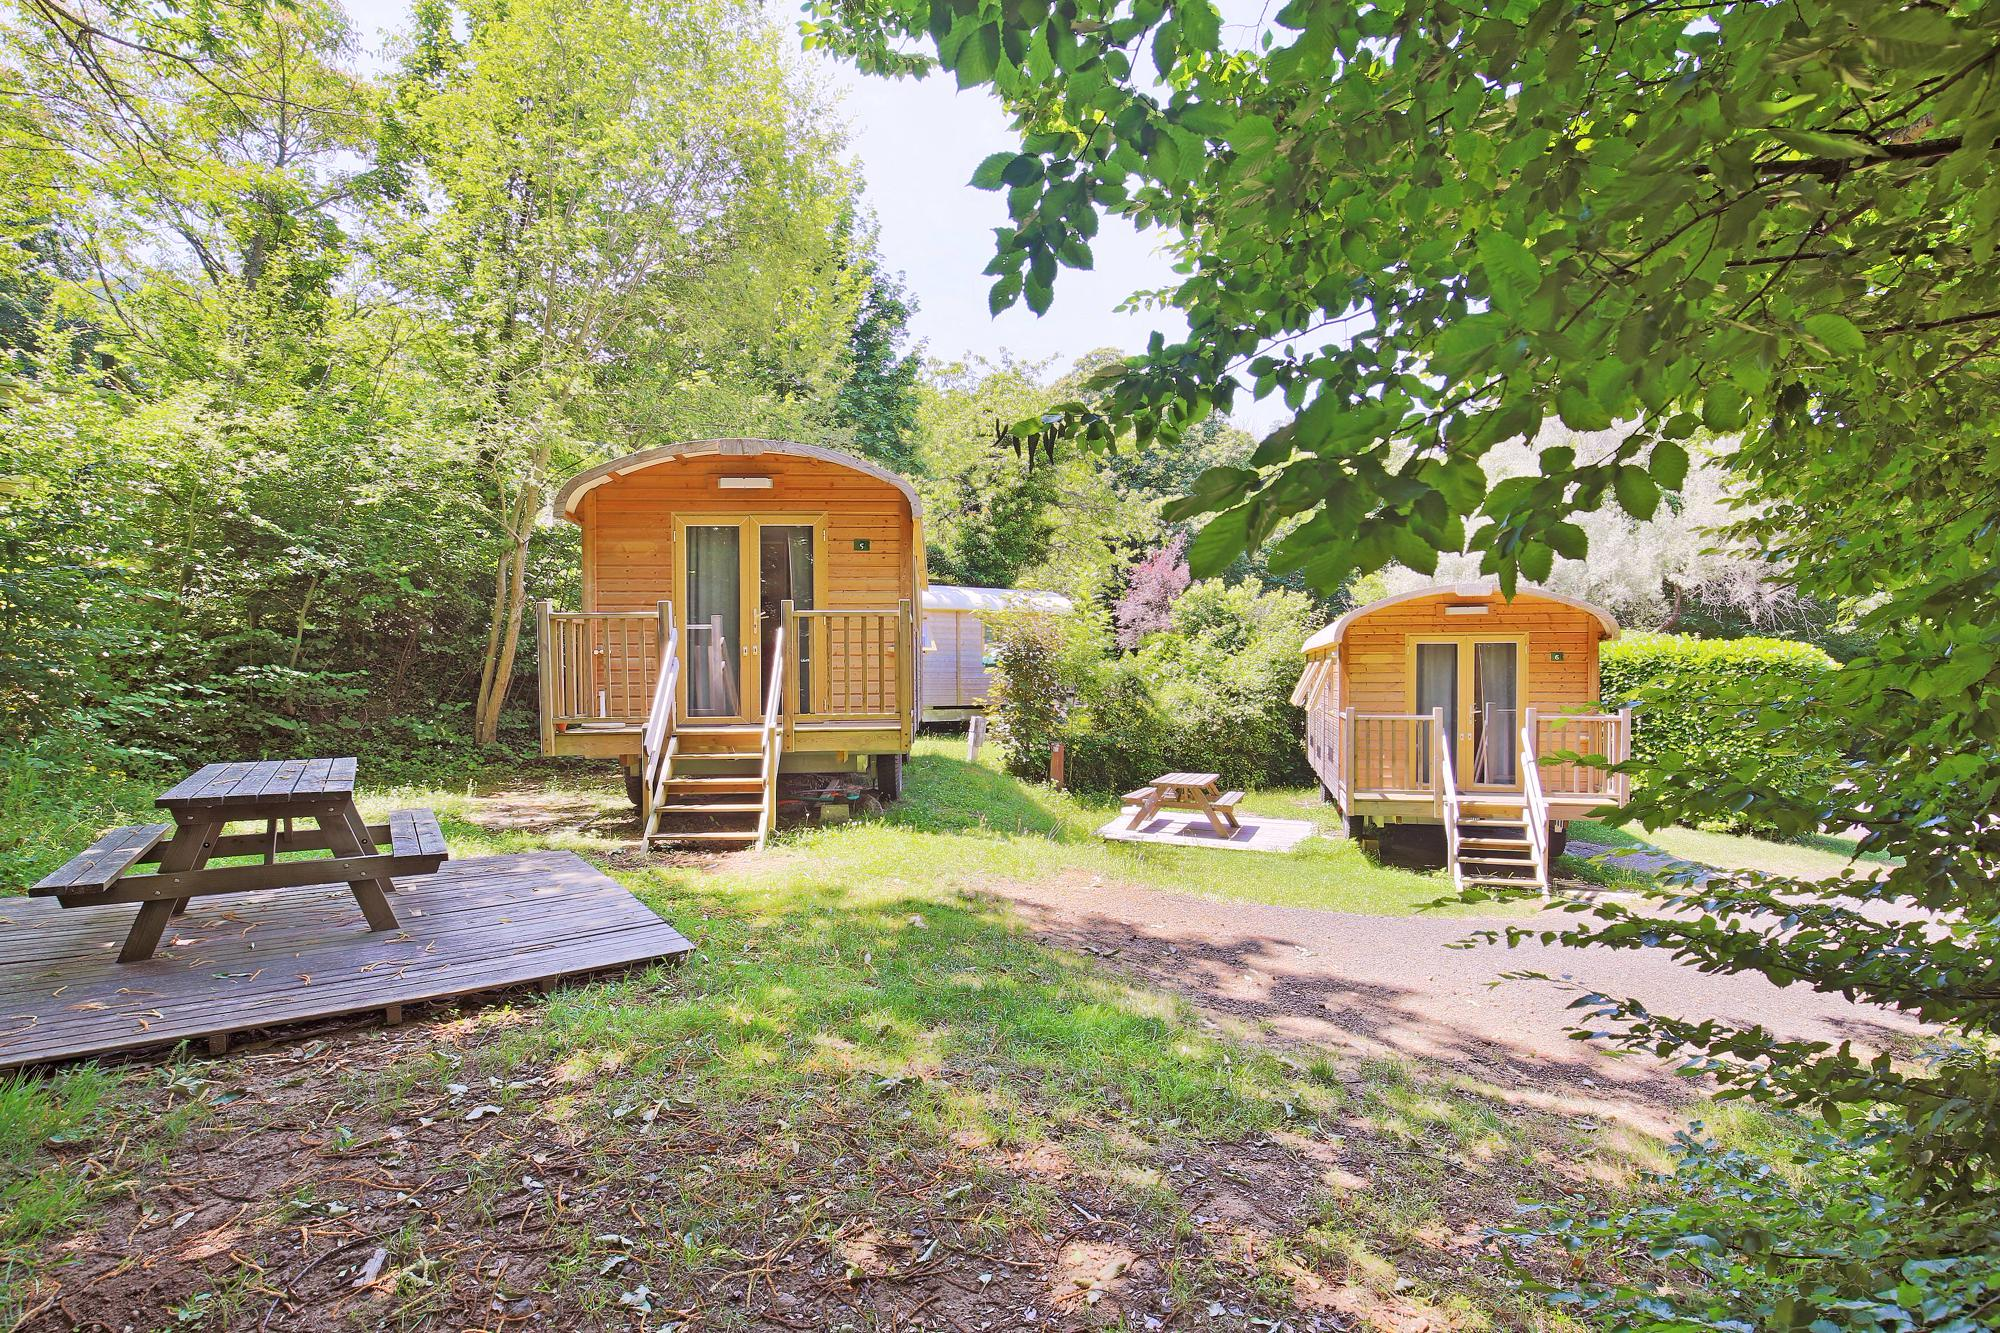 Glamping in Puy-de-Dôme | Best Glamping Sites in Puy-de-Dôme